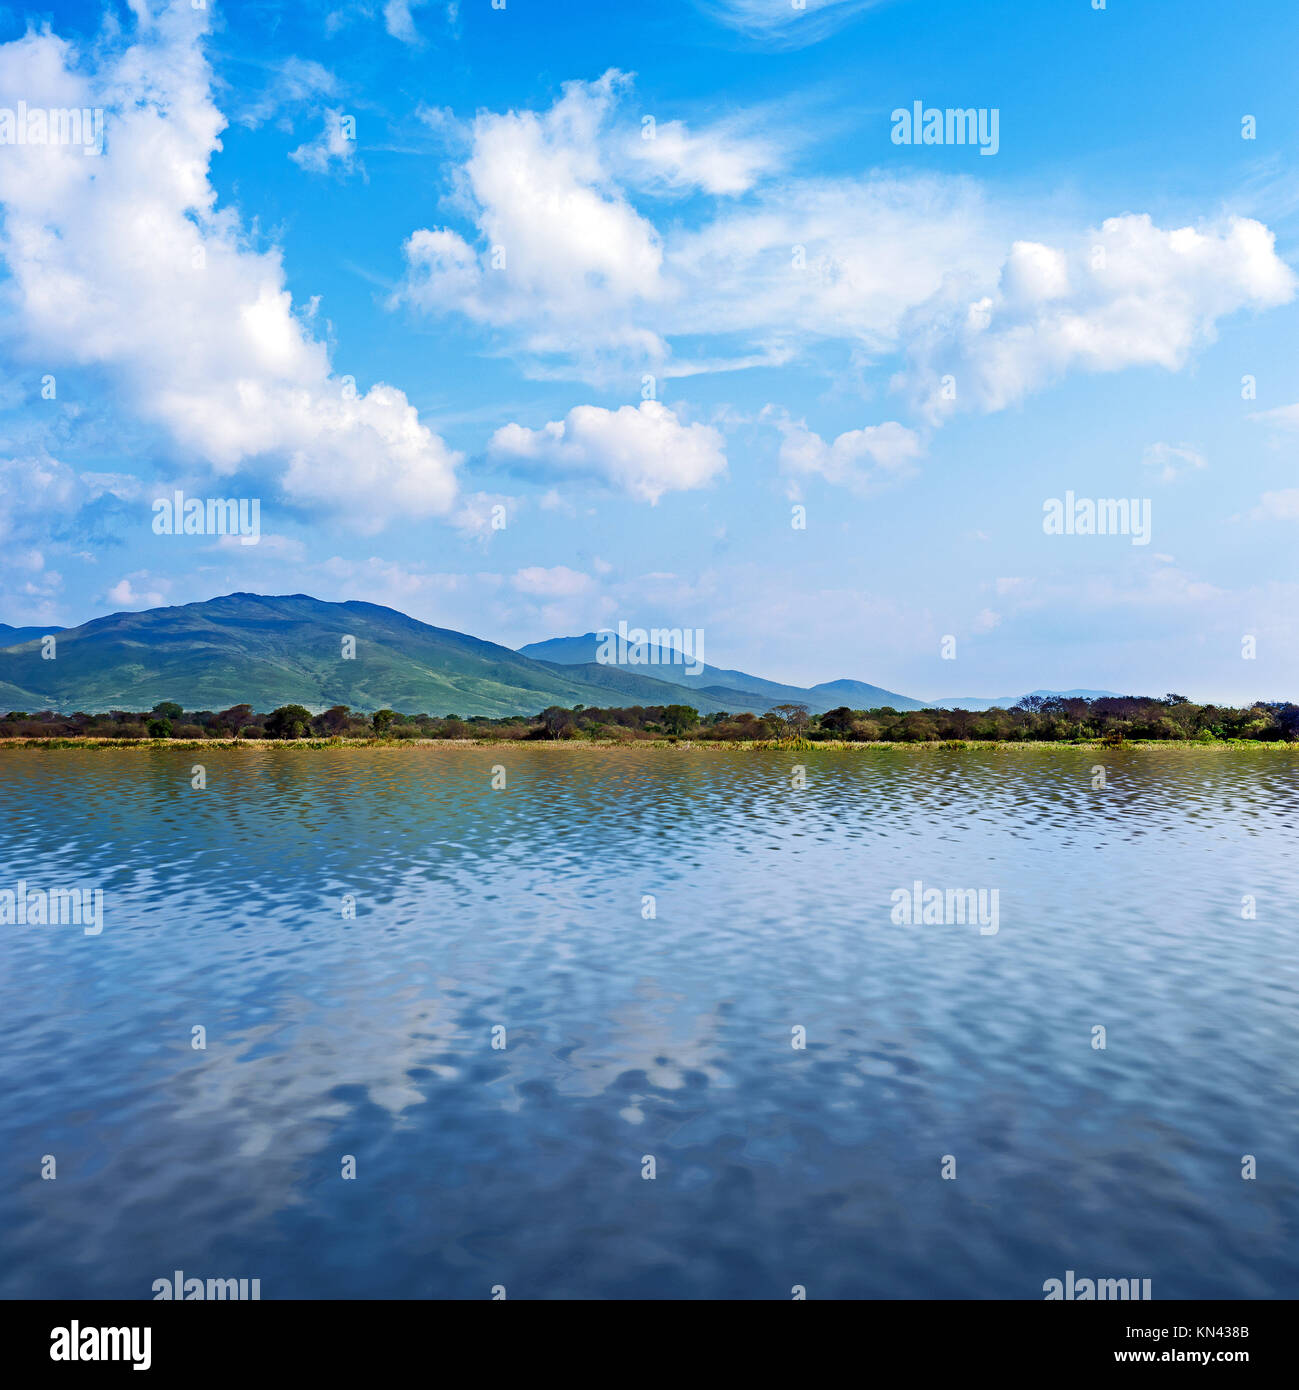 Sea view of the Gulf of Peter the Great. Japanese sea. Vladivostok. Russia. - Stock Image